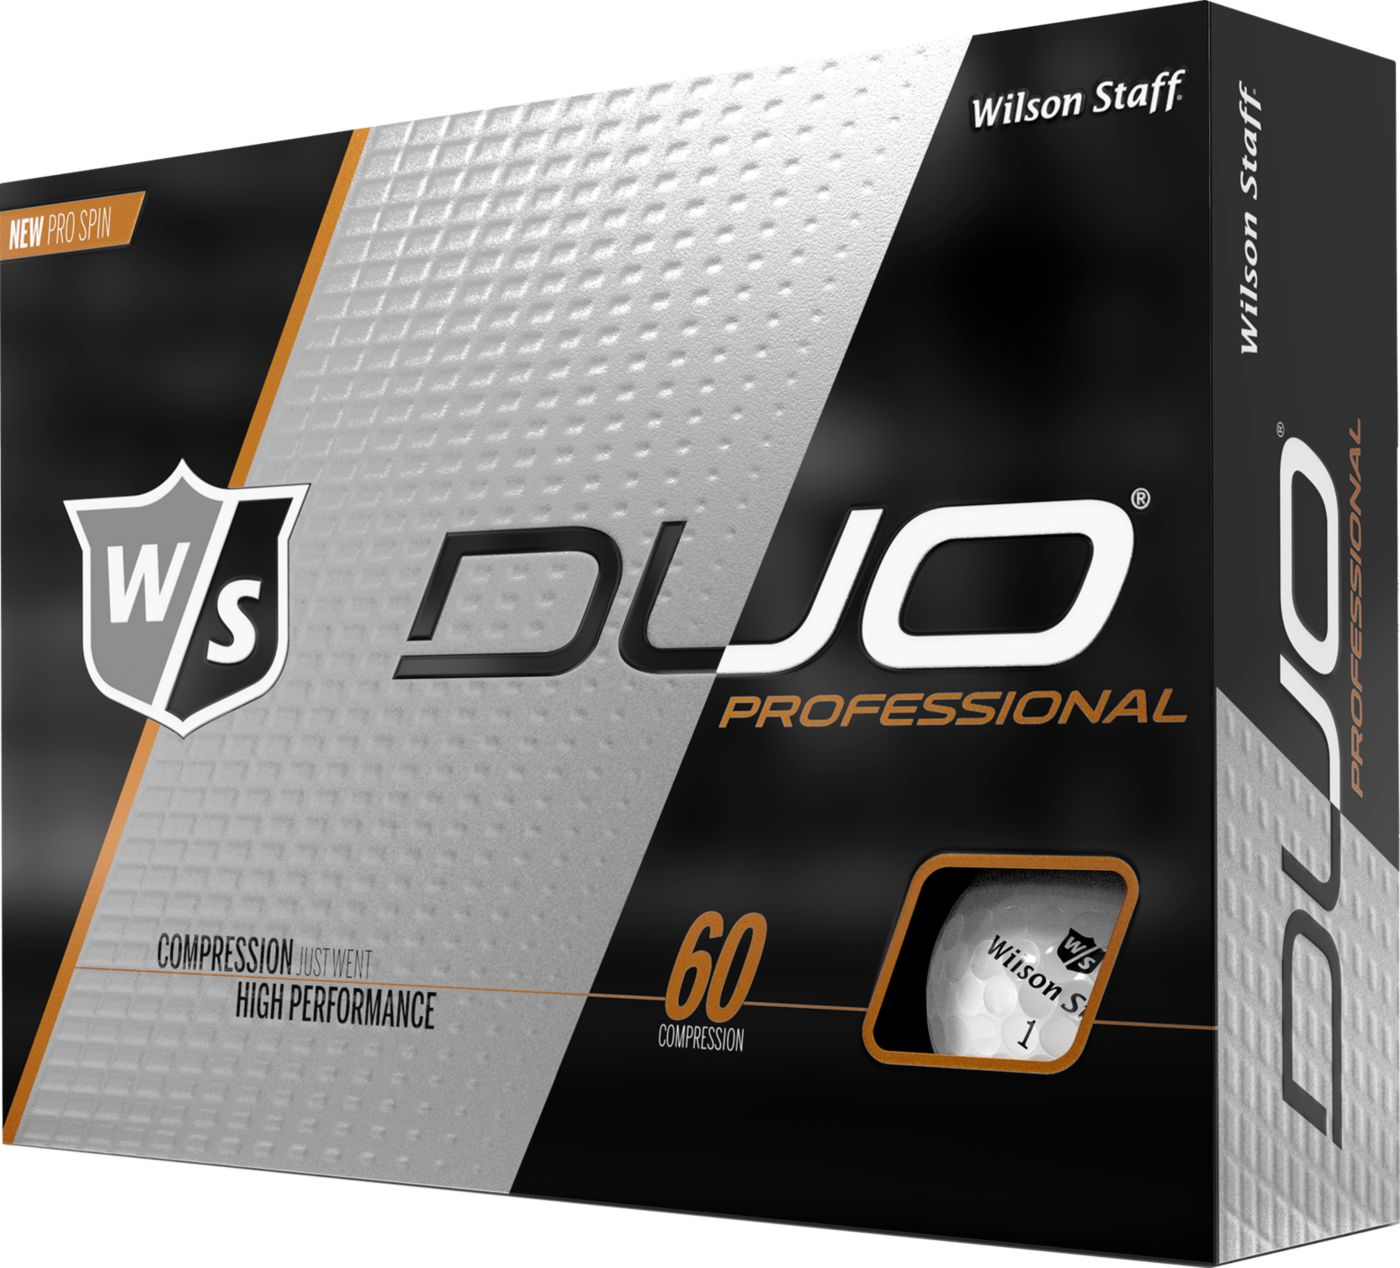 Wilson Staff Duo Professional Personalized Golf Balls – Gloss White